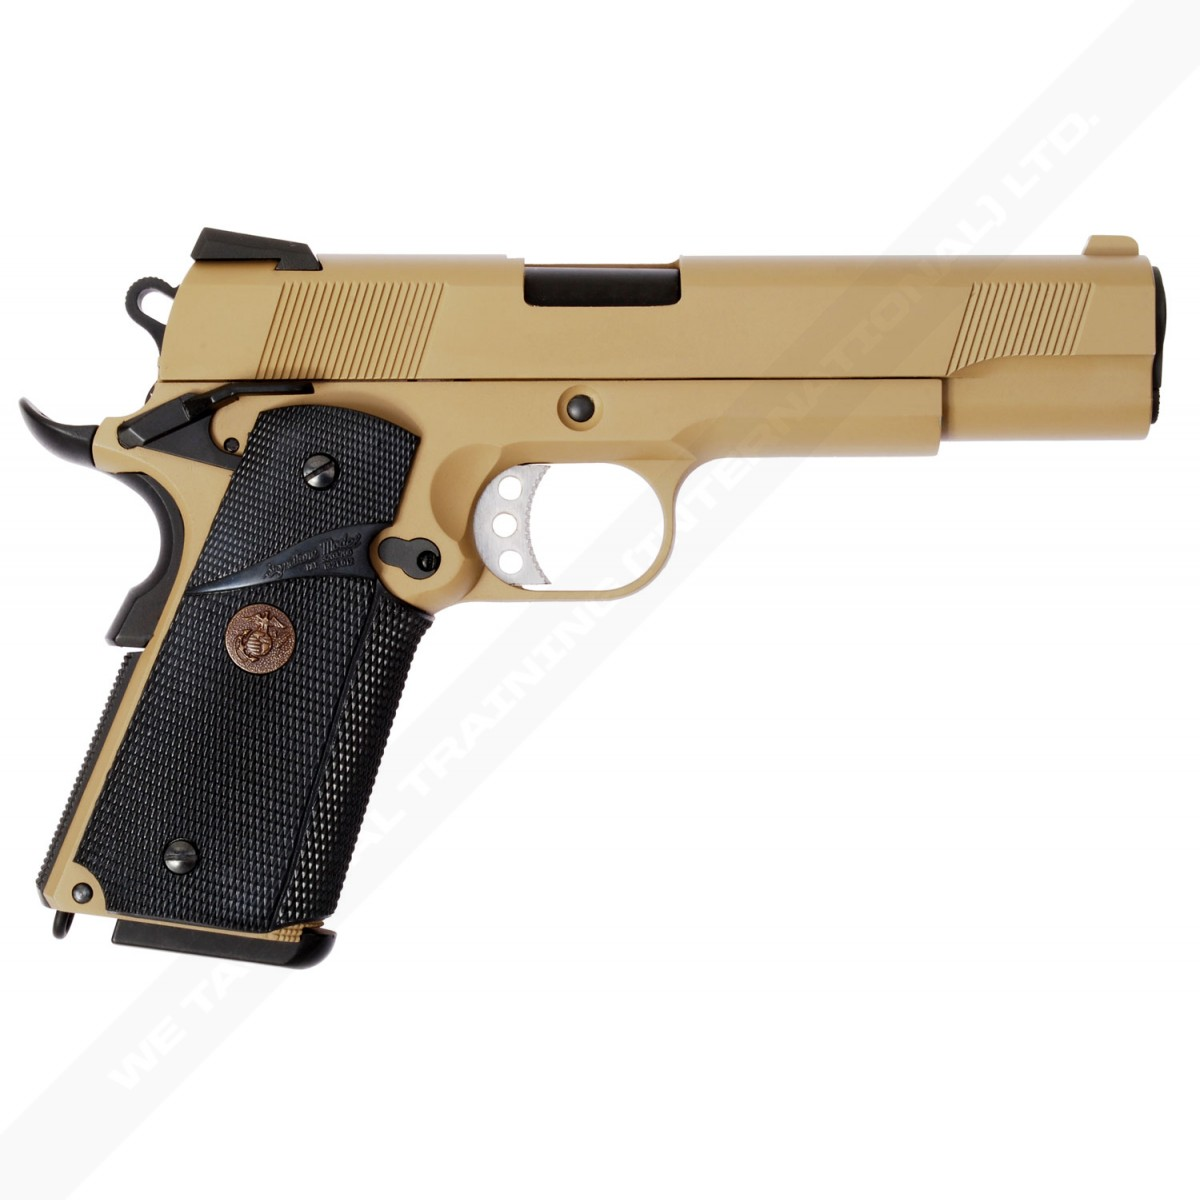 WE 1911 / MEU Full Metal Gas Blowback Pistol - Tan